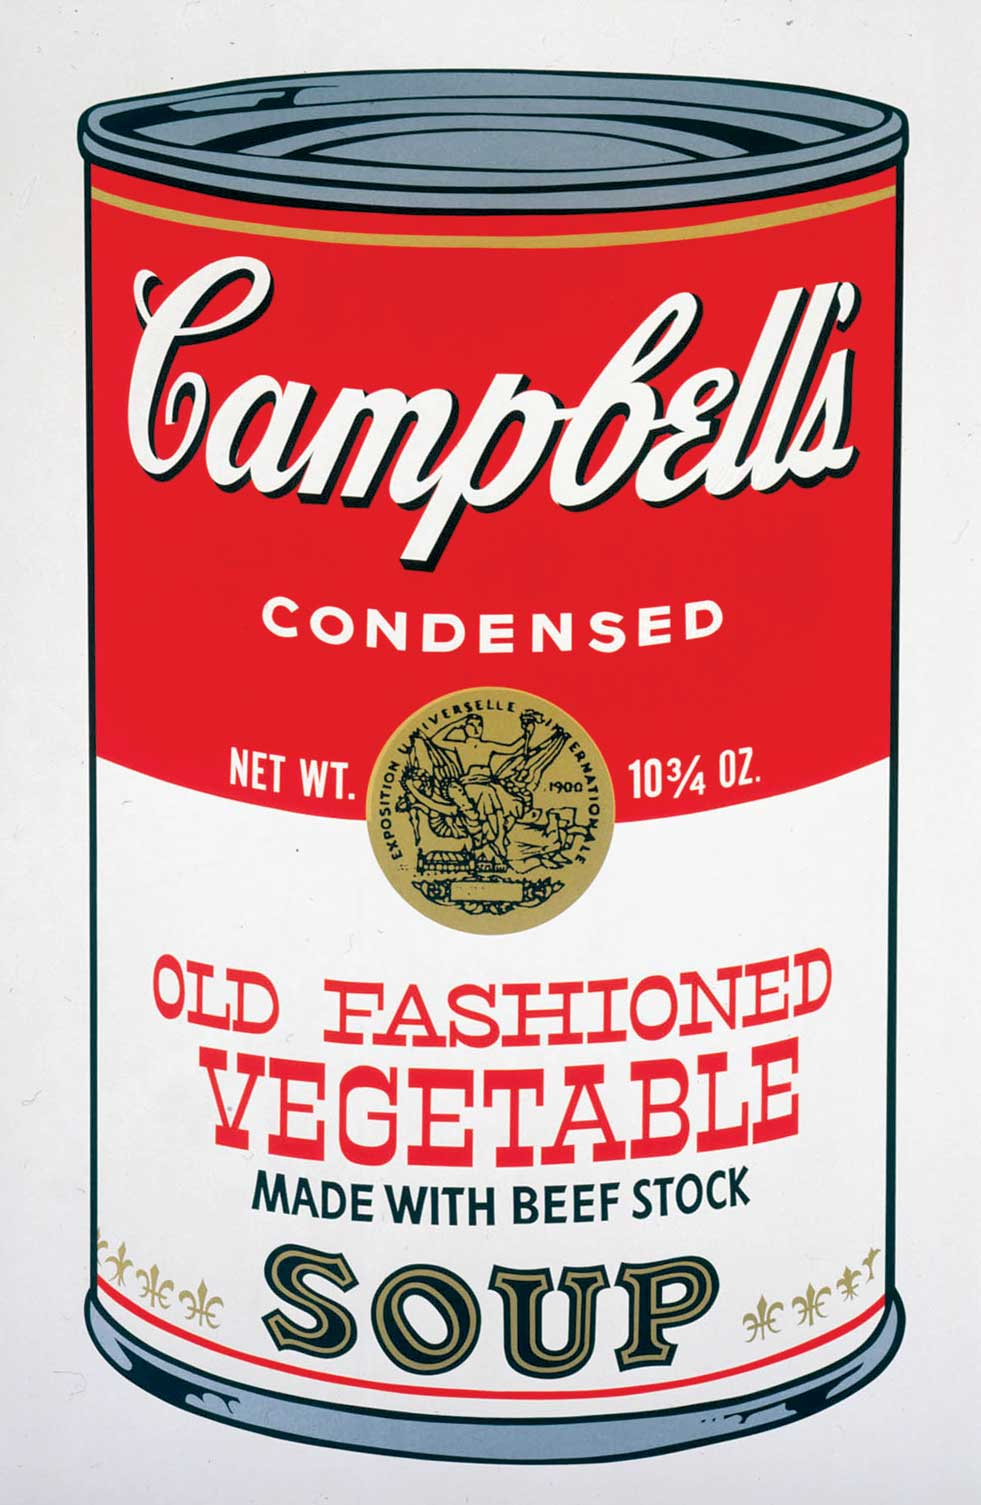 Andy Warhold Campbell Soup